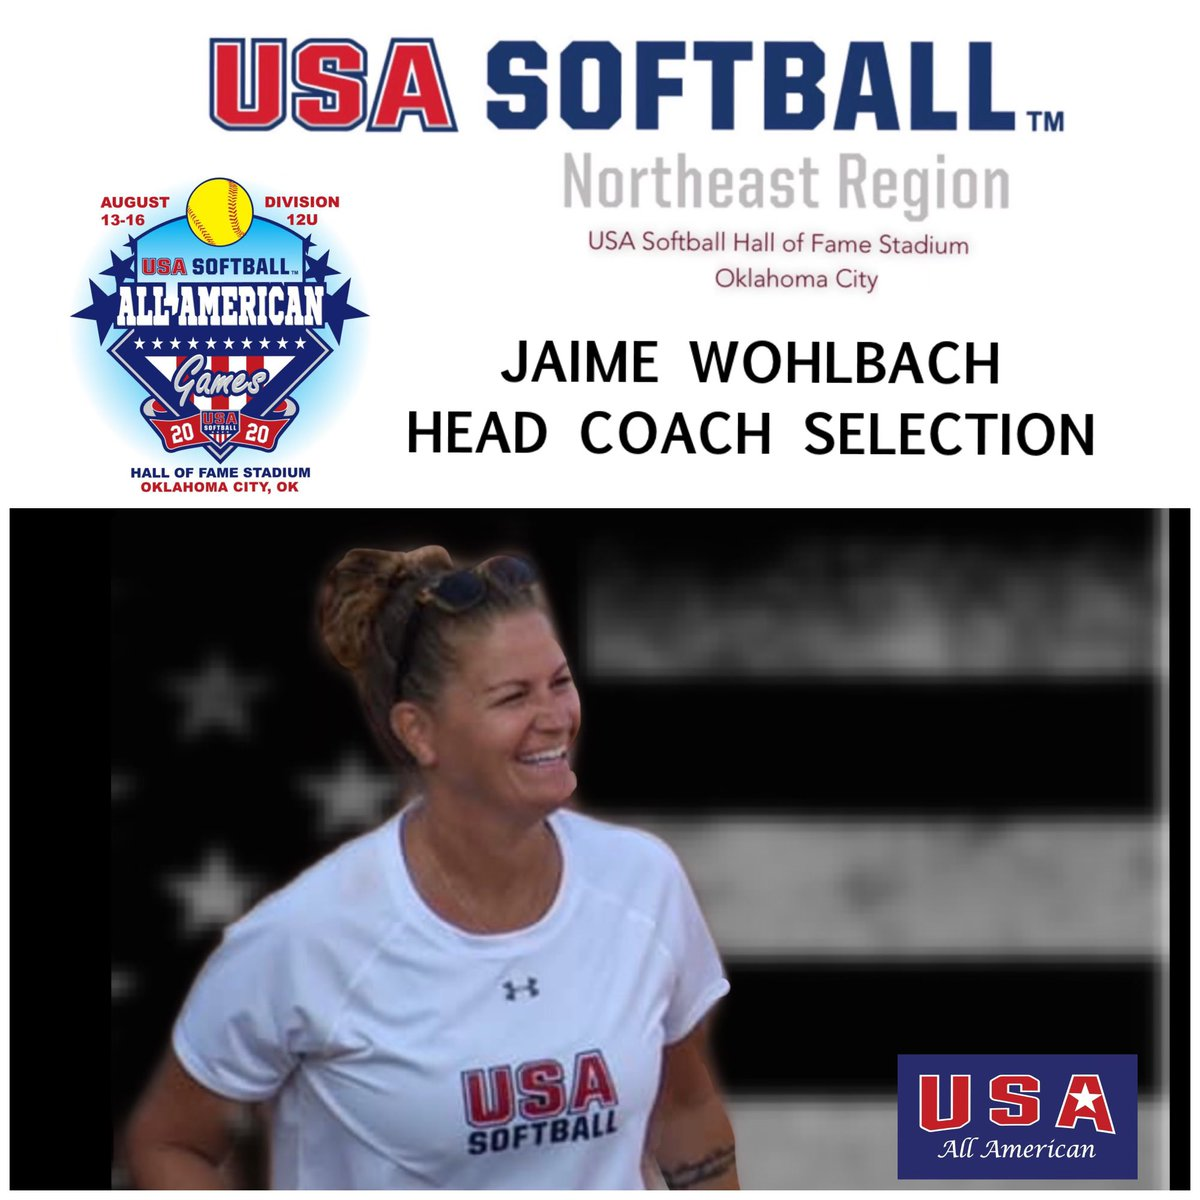 Extremely excited to be named Head Coach for the USA 12u All American Games for the northeast region. It's such an honor to wear USA on my chest, and share, teach, & lead the next generation. Bringing the best of the best 12u to Hall of Fame Stadium in Oklahoma. #USA